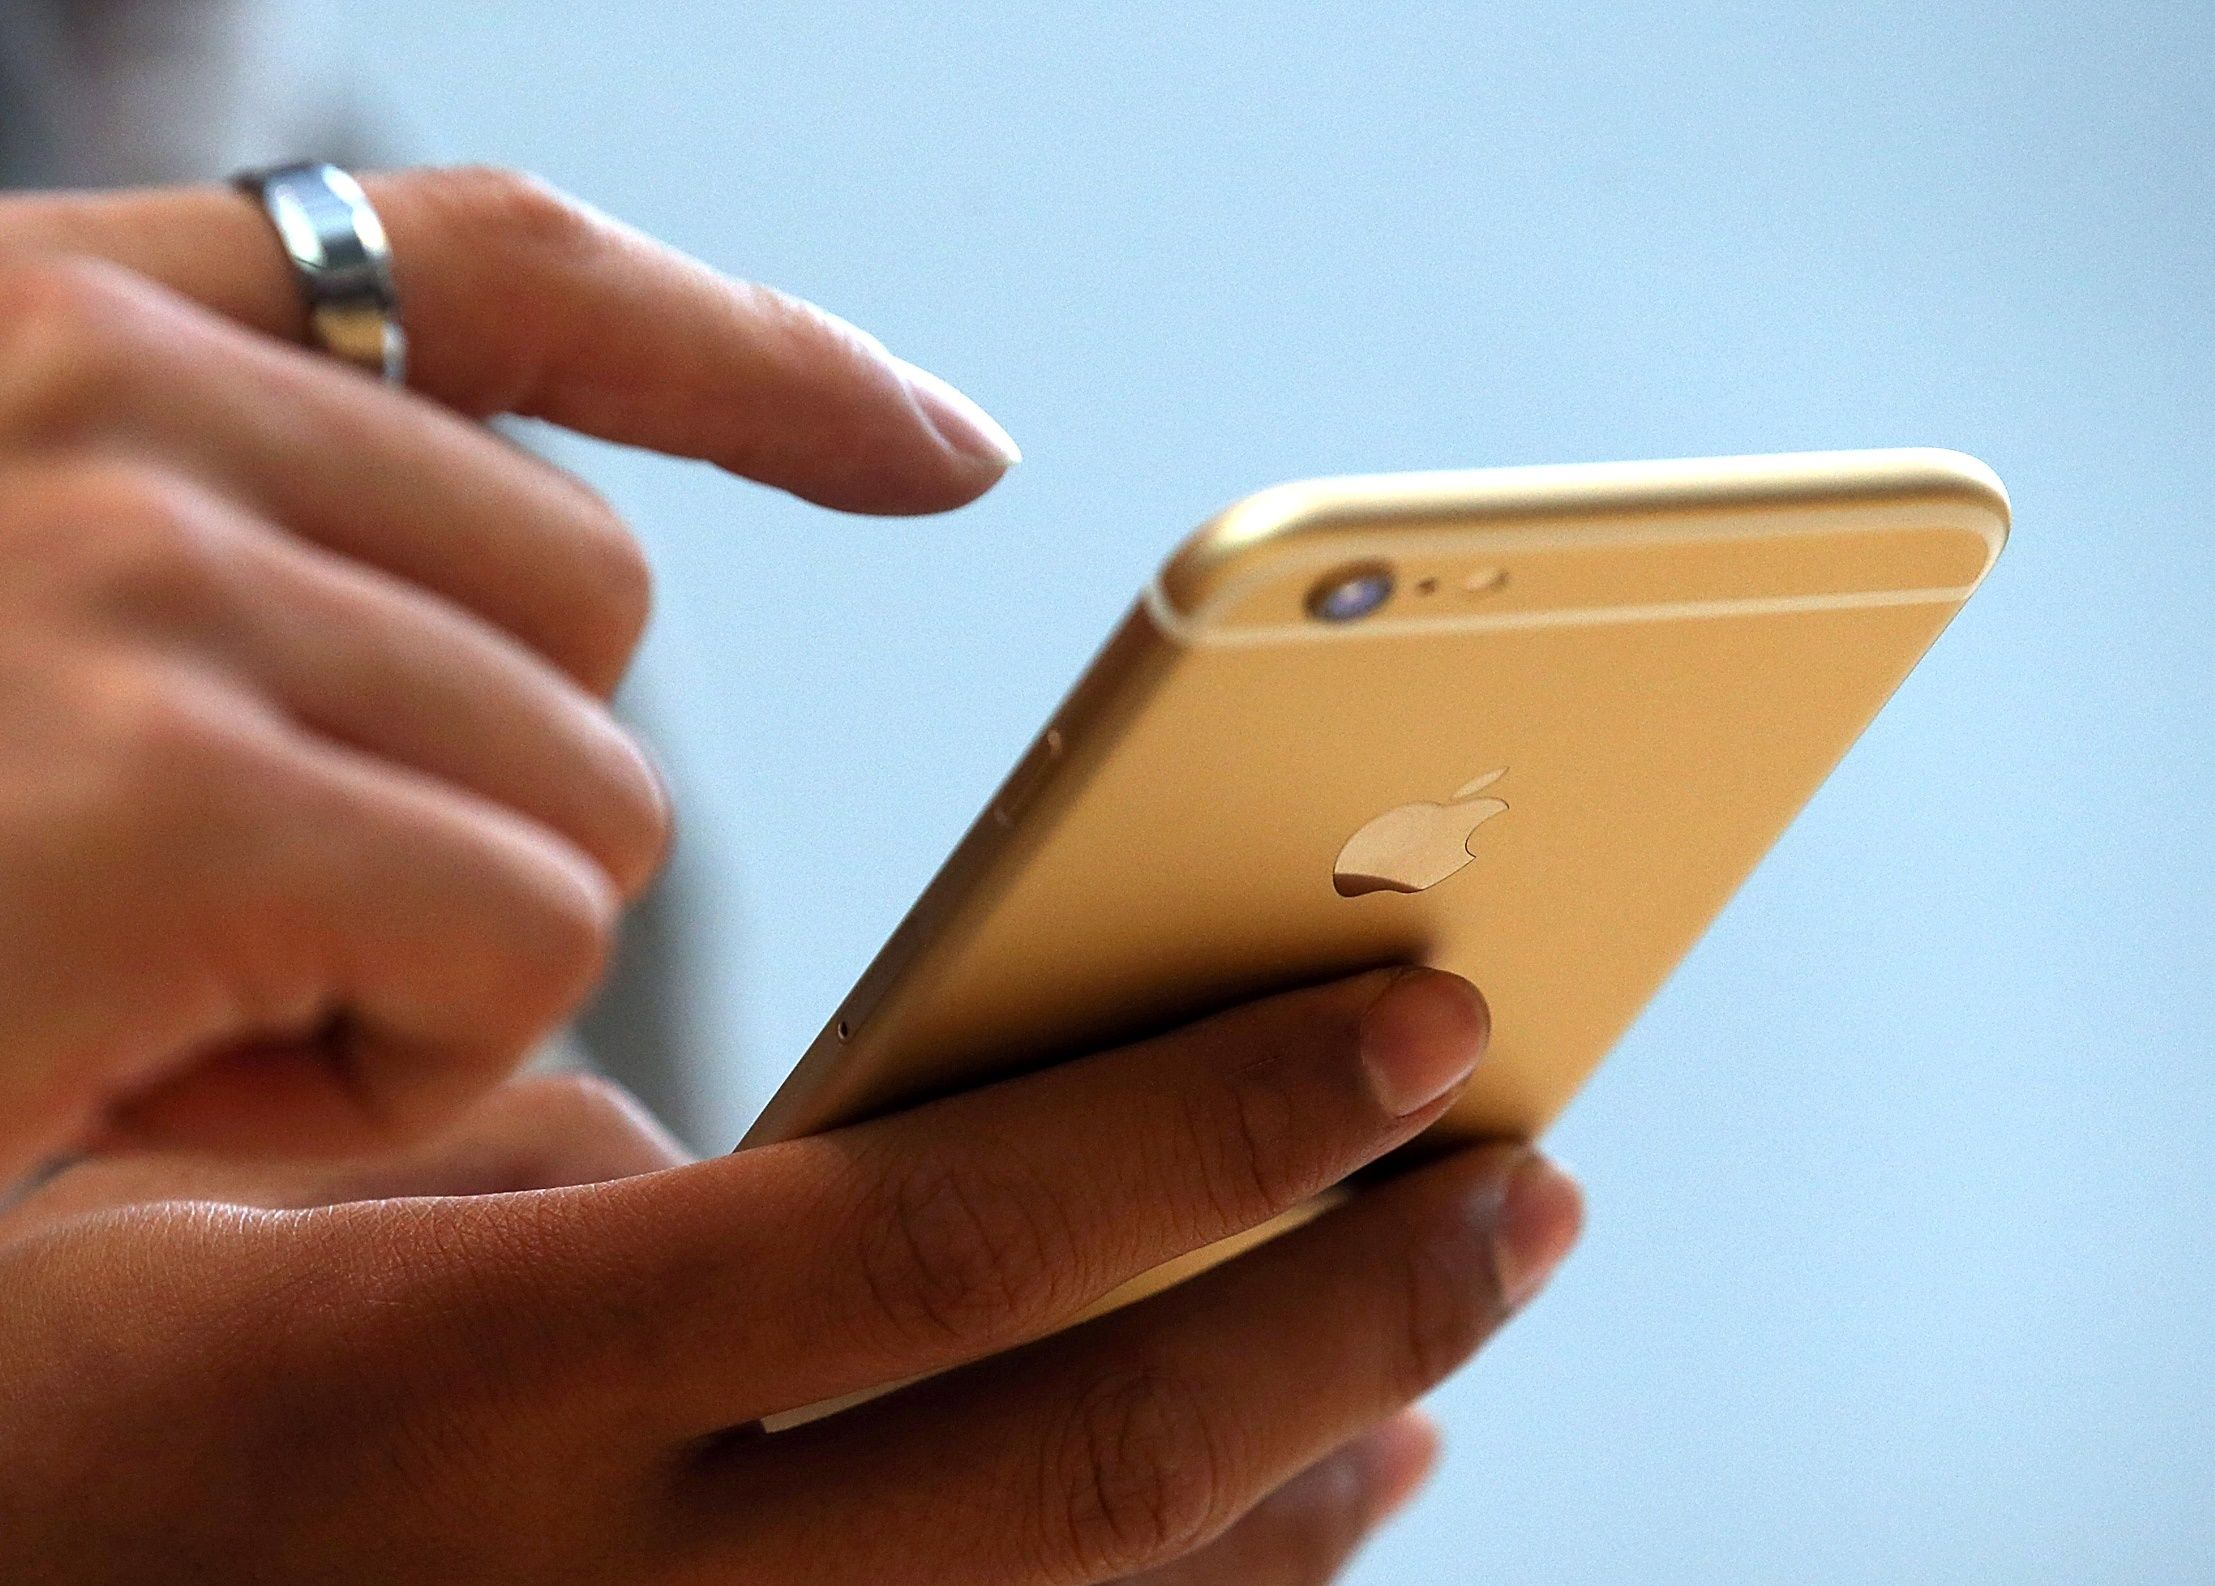 iphone update apple spyware hackers